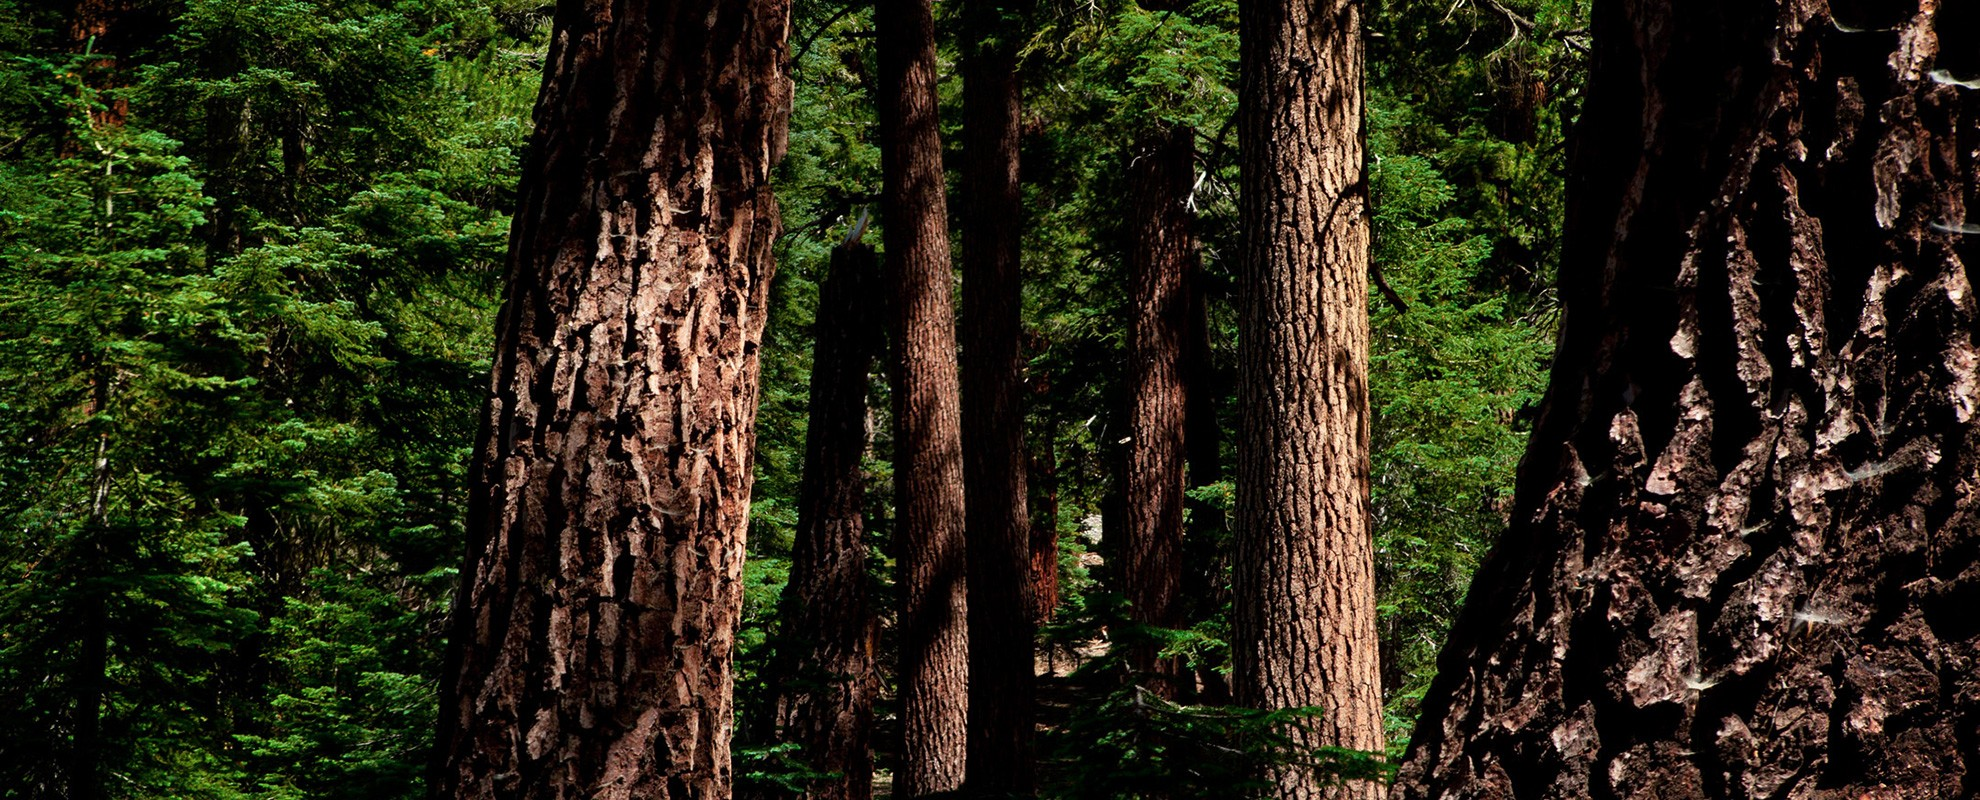 California red firs (Abies magnifica) at Timber Gap (9,511 feet), a 2-mile climb out of the Mineral King valley.